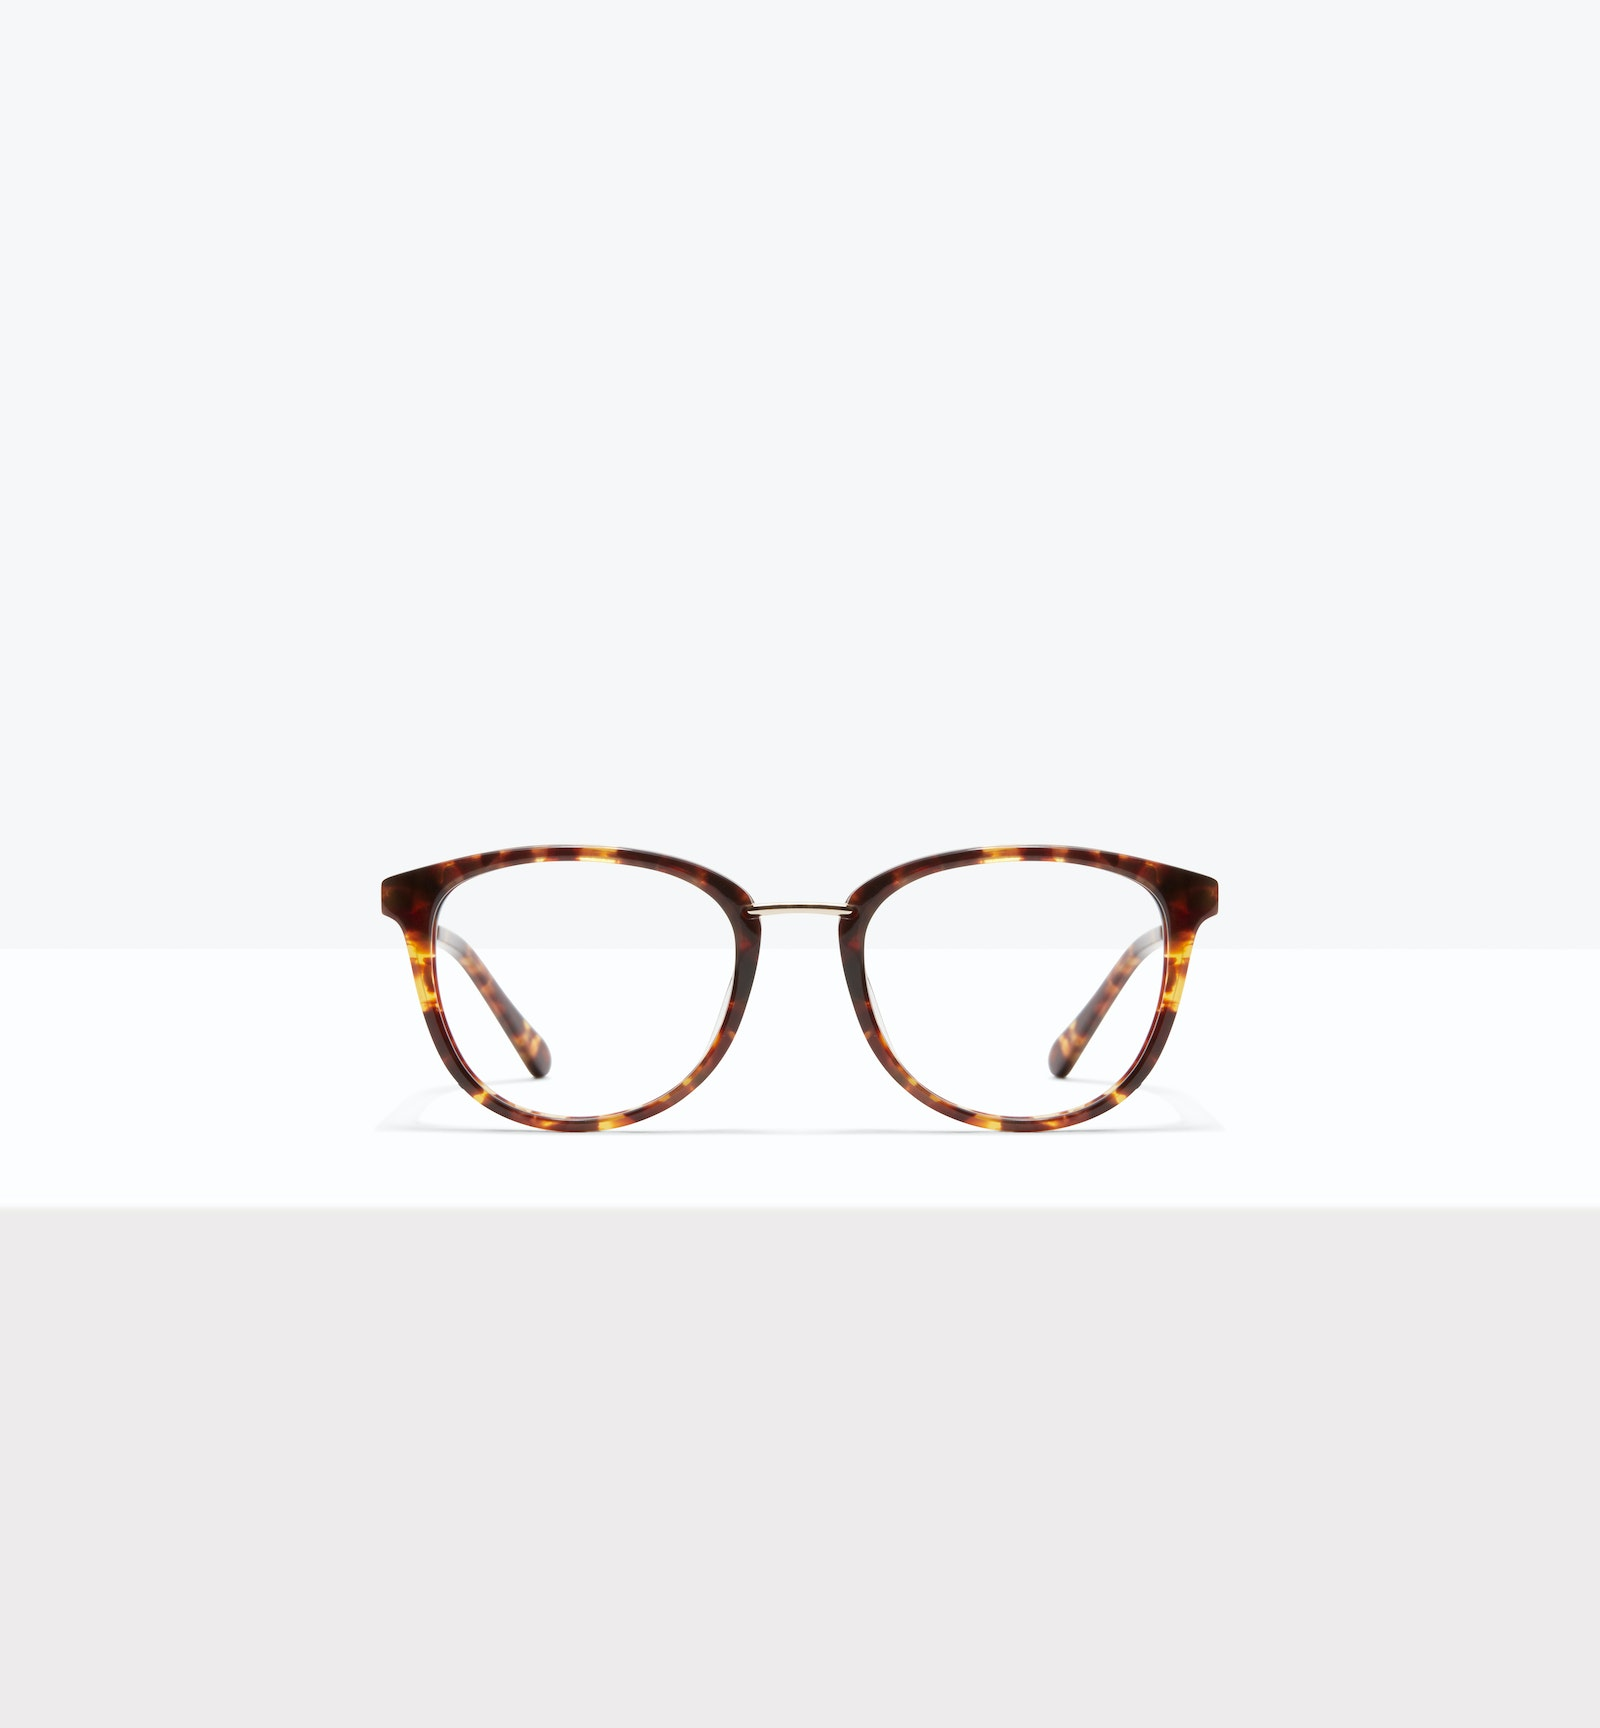 Affordable Fashion Glasses Square Round Eyeglasses Women Bella XS Sepia Kiss